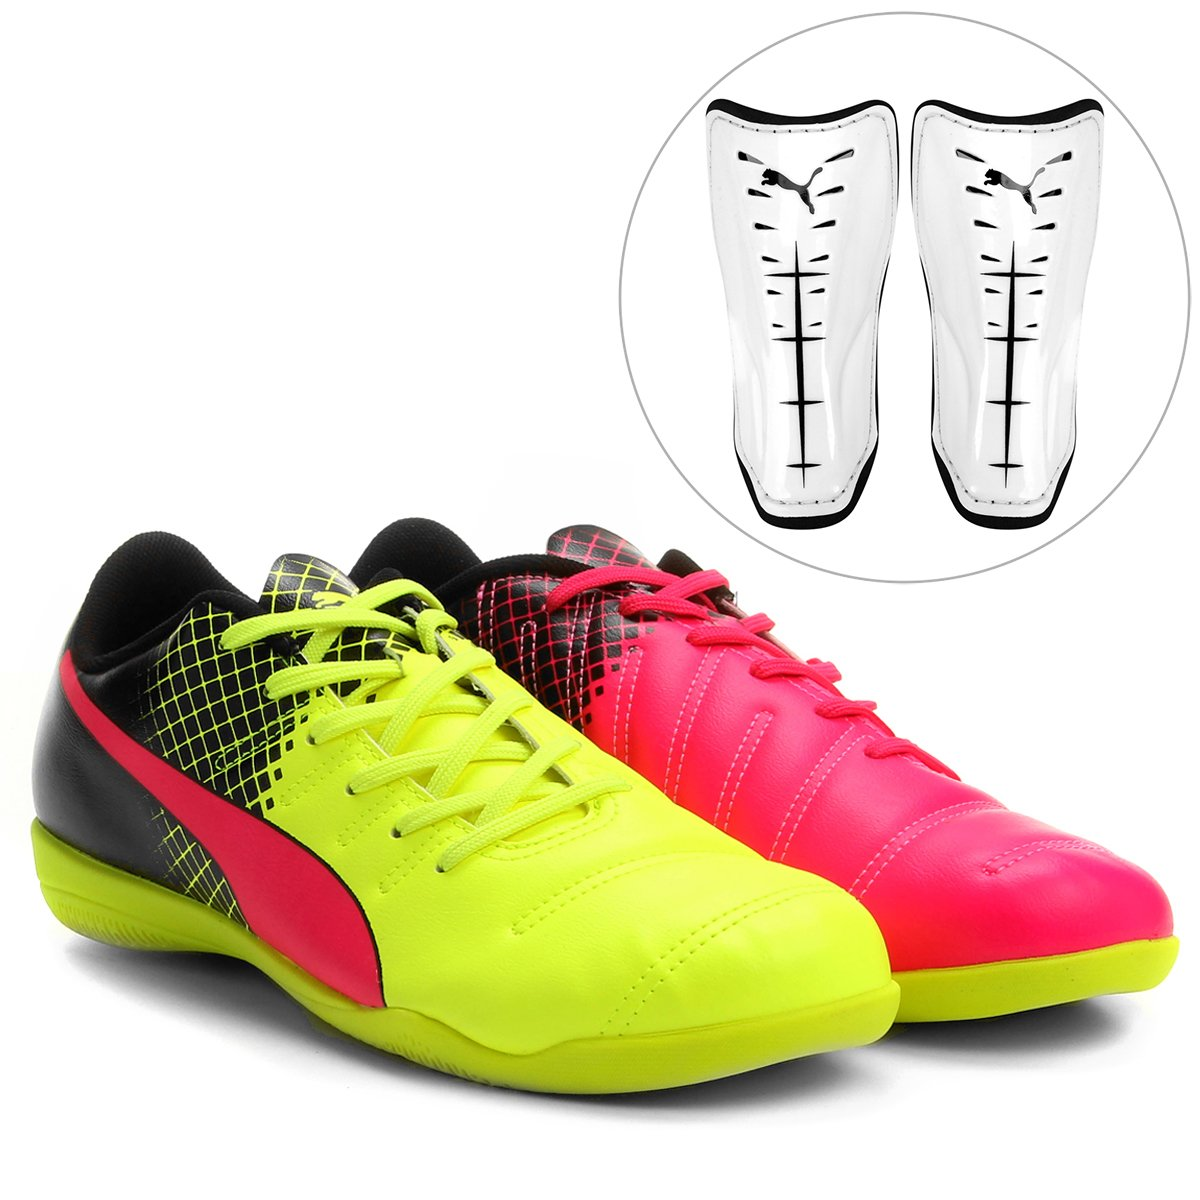 Kit Chuteira Puma Evopower 4.3 Tricks IT Futsal + Caneleira Puma Power  Force 6.11 Slip - Compre Agora  407a4c3f1d504